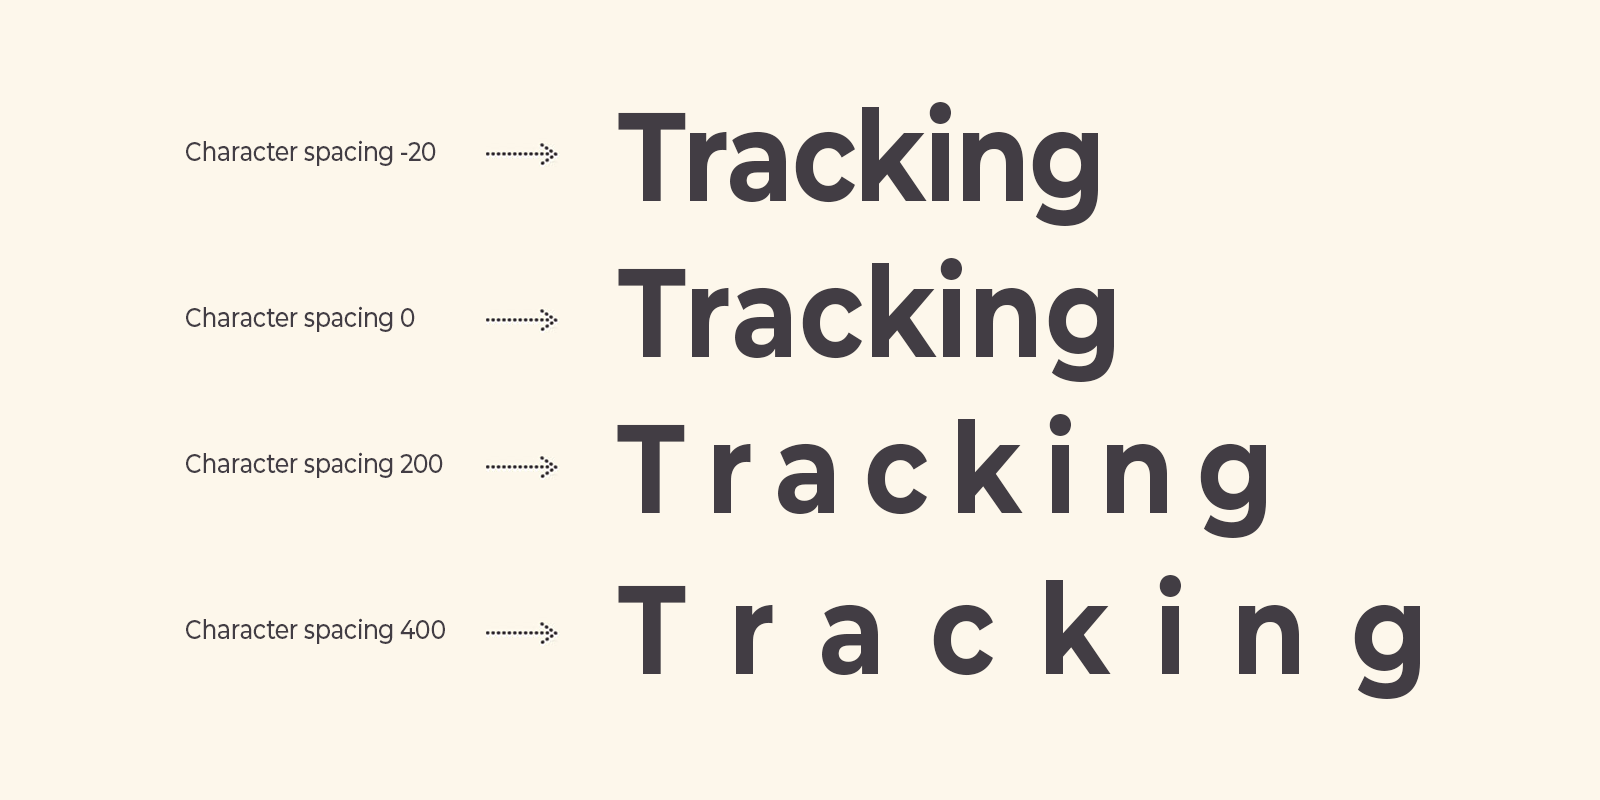 Examples of tracking at different points